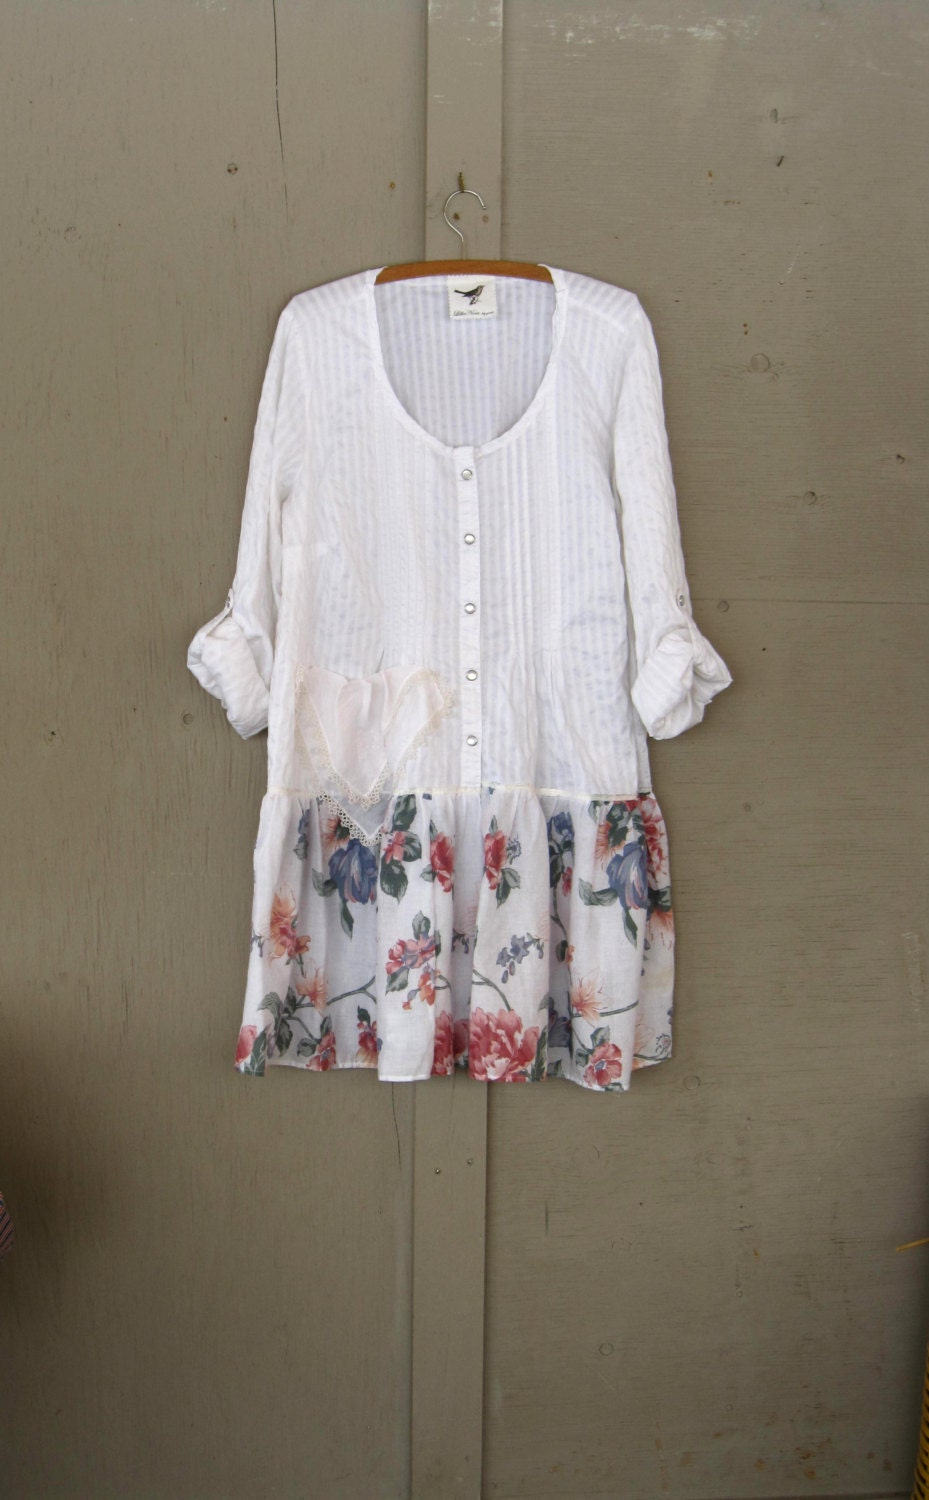 Romantic Bohemian Dress Upcycled Clothing Up Cycled Cowgirl